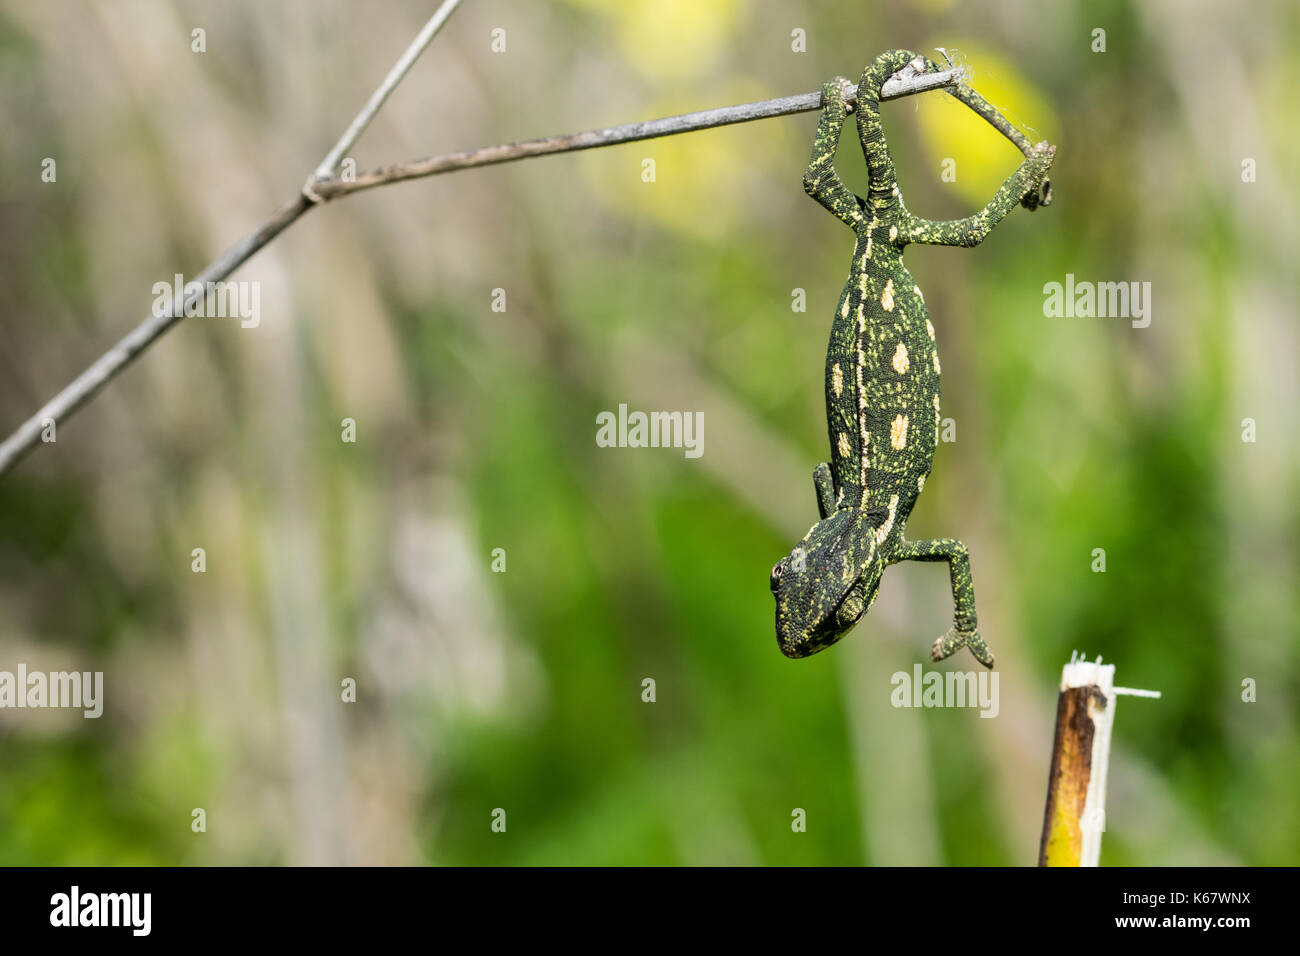 A baby chameleon holding on and trying to balance on a fennel twig, using its tail and legs. Maltese Islands, Malta - Stock Image